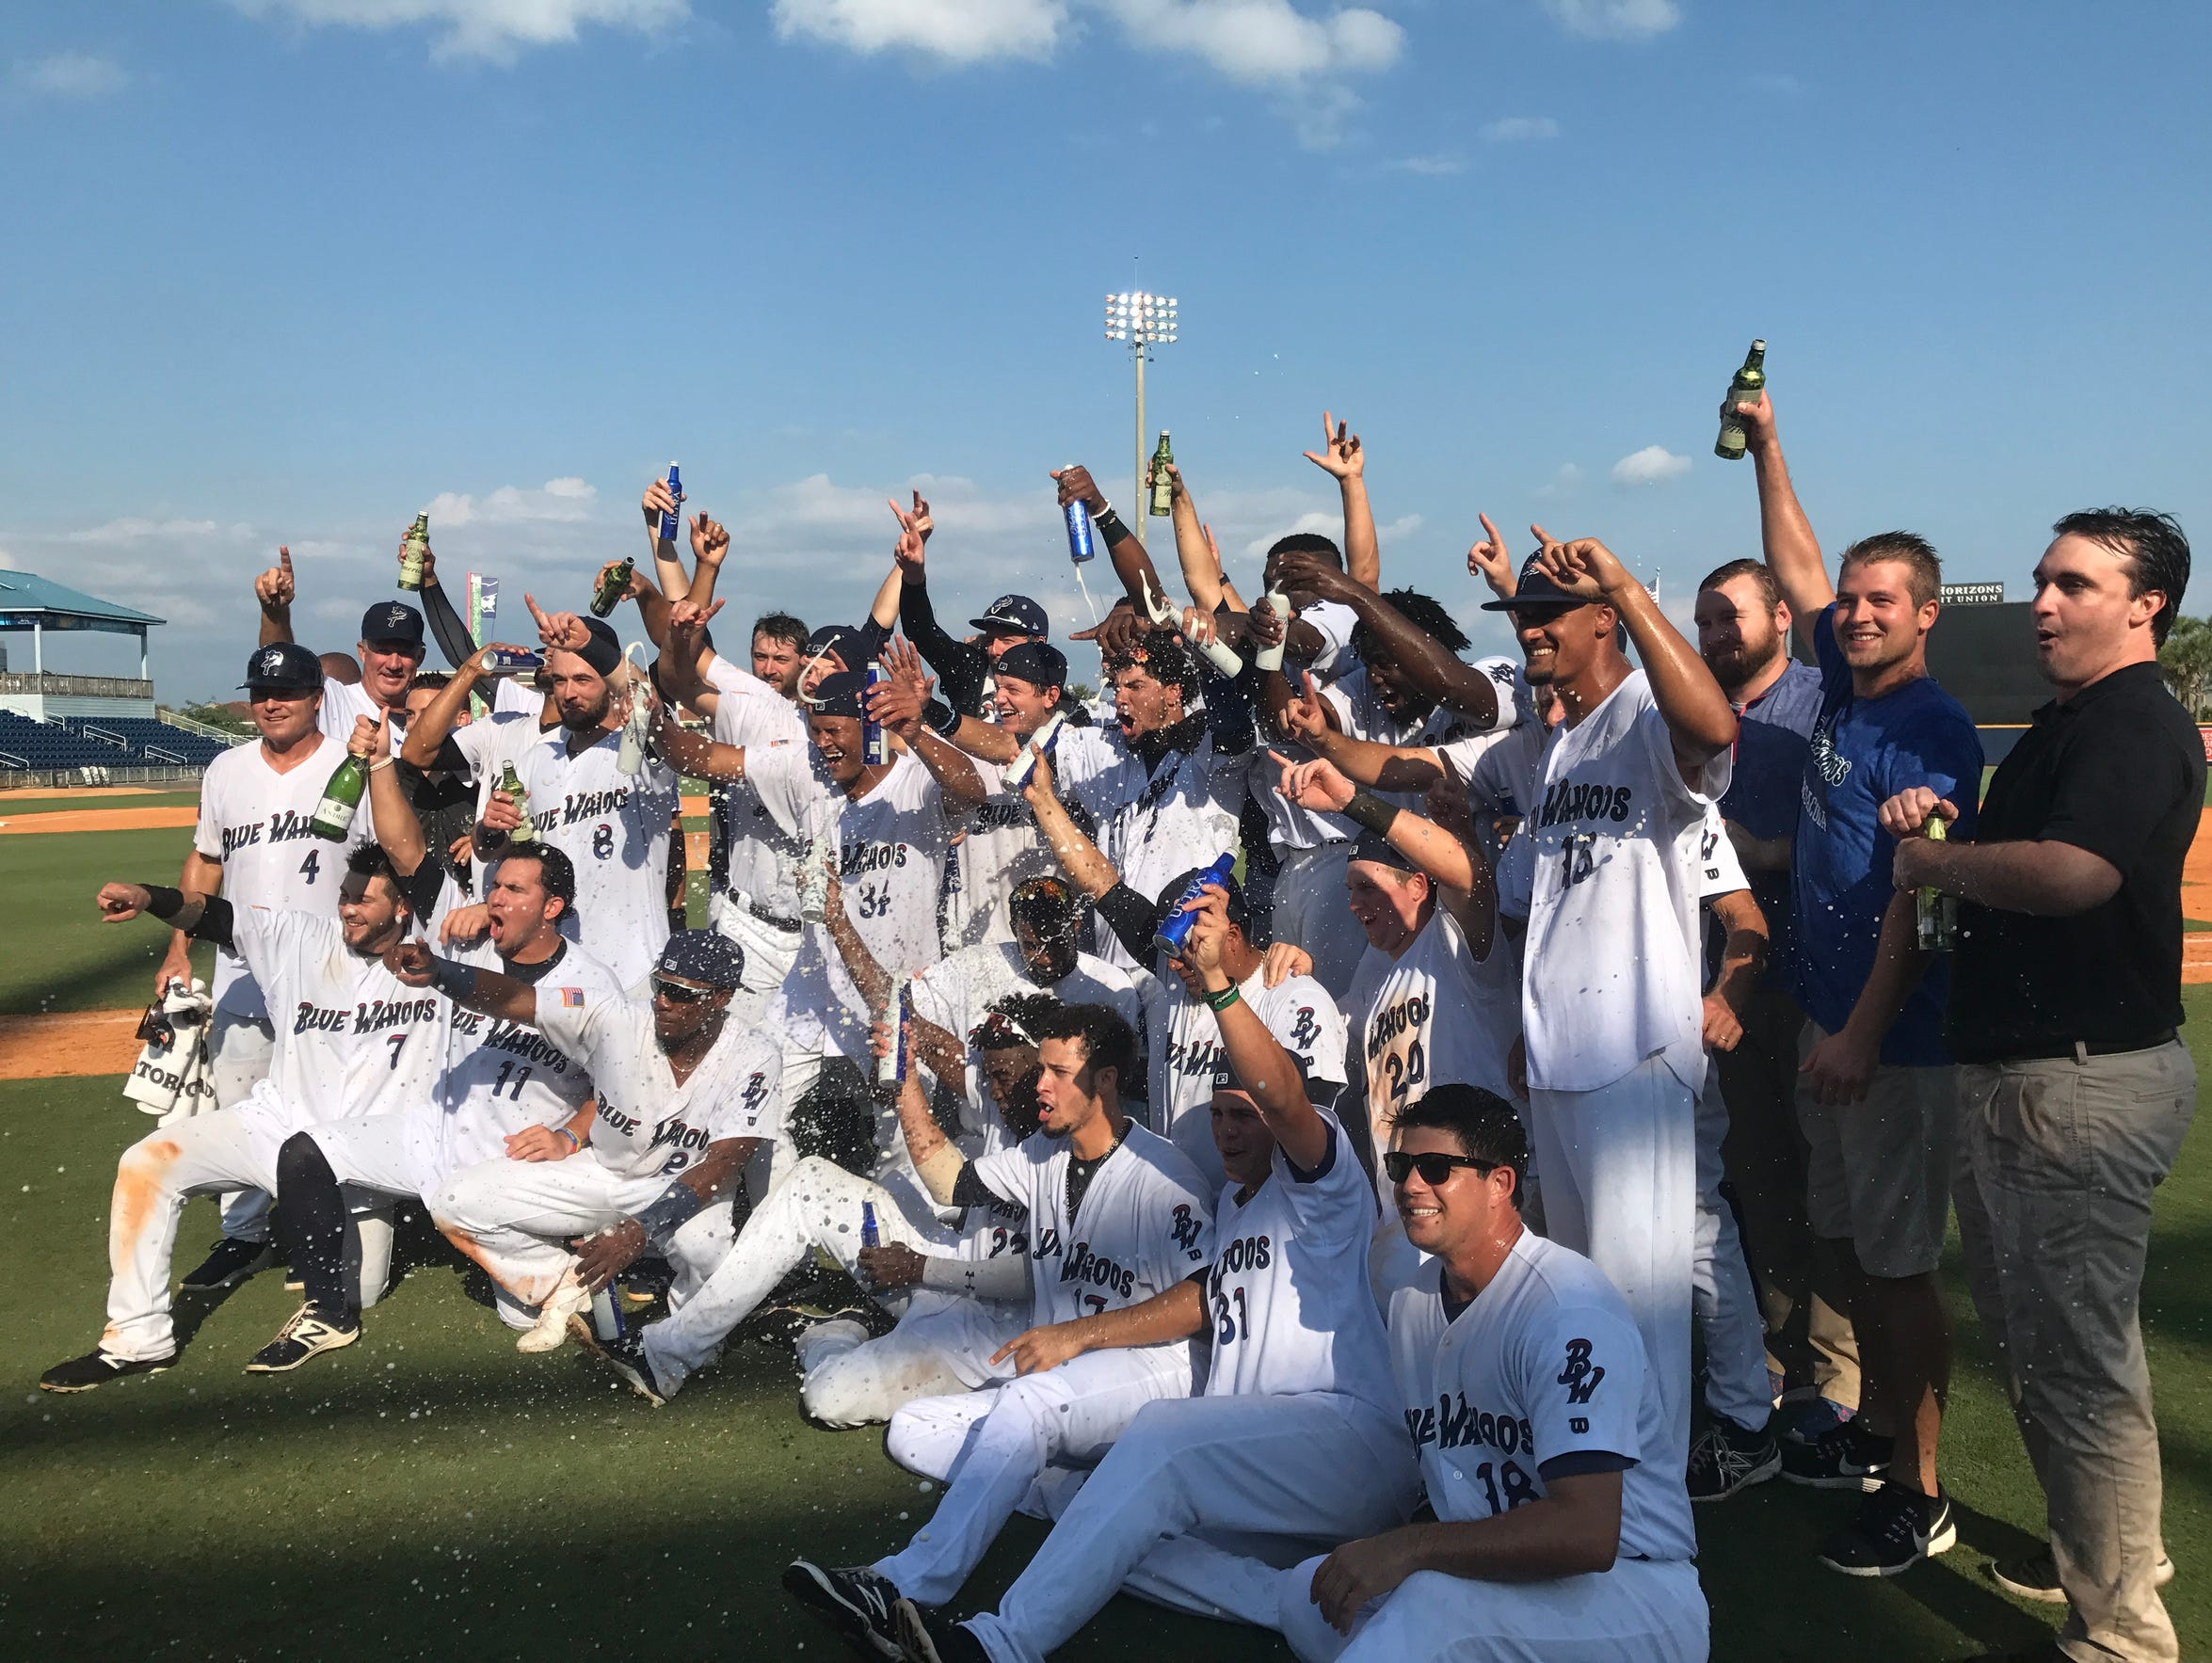 The Blue Wahoos celebrate their Southern League co-championship after a 12-inning victory against the Jacksonville Jumbo Shrimp and sweep of the division championship series.